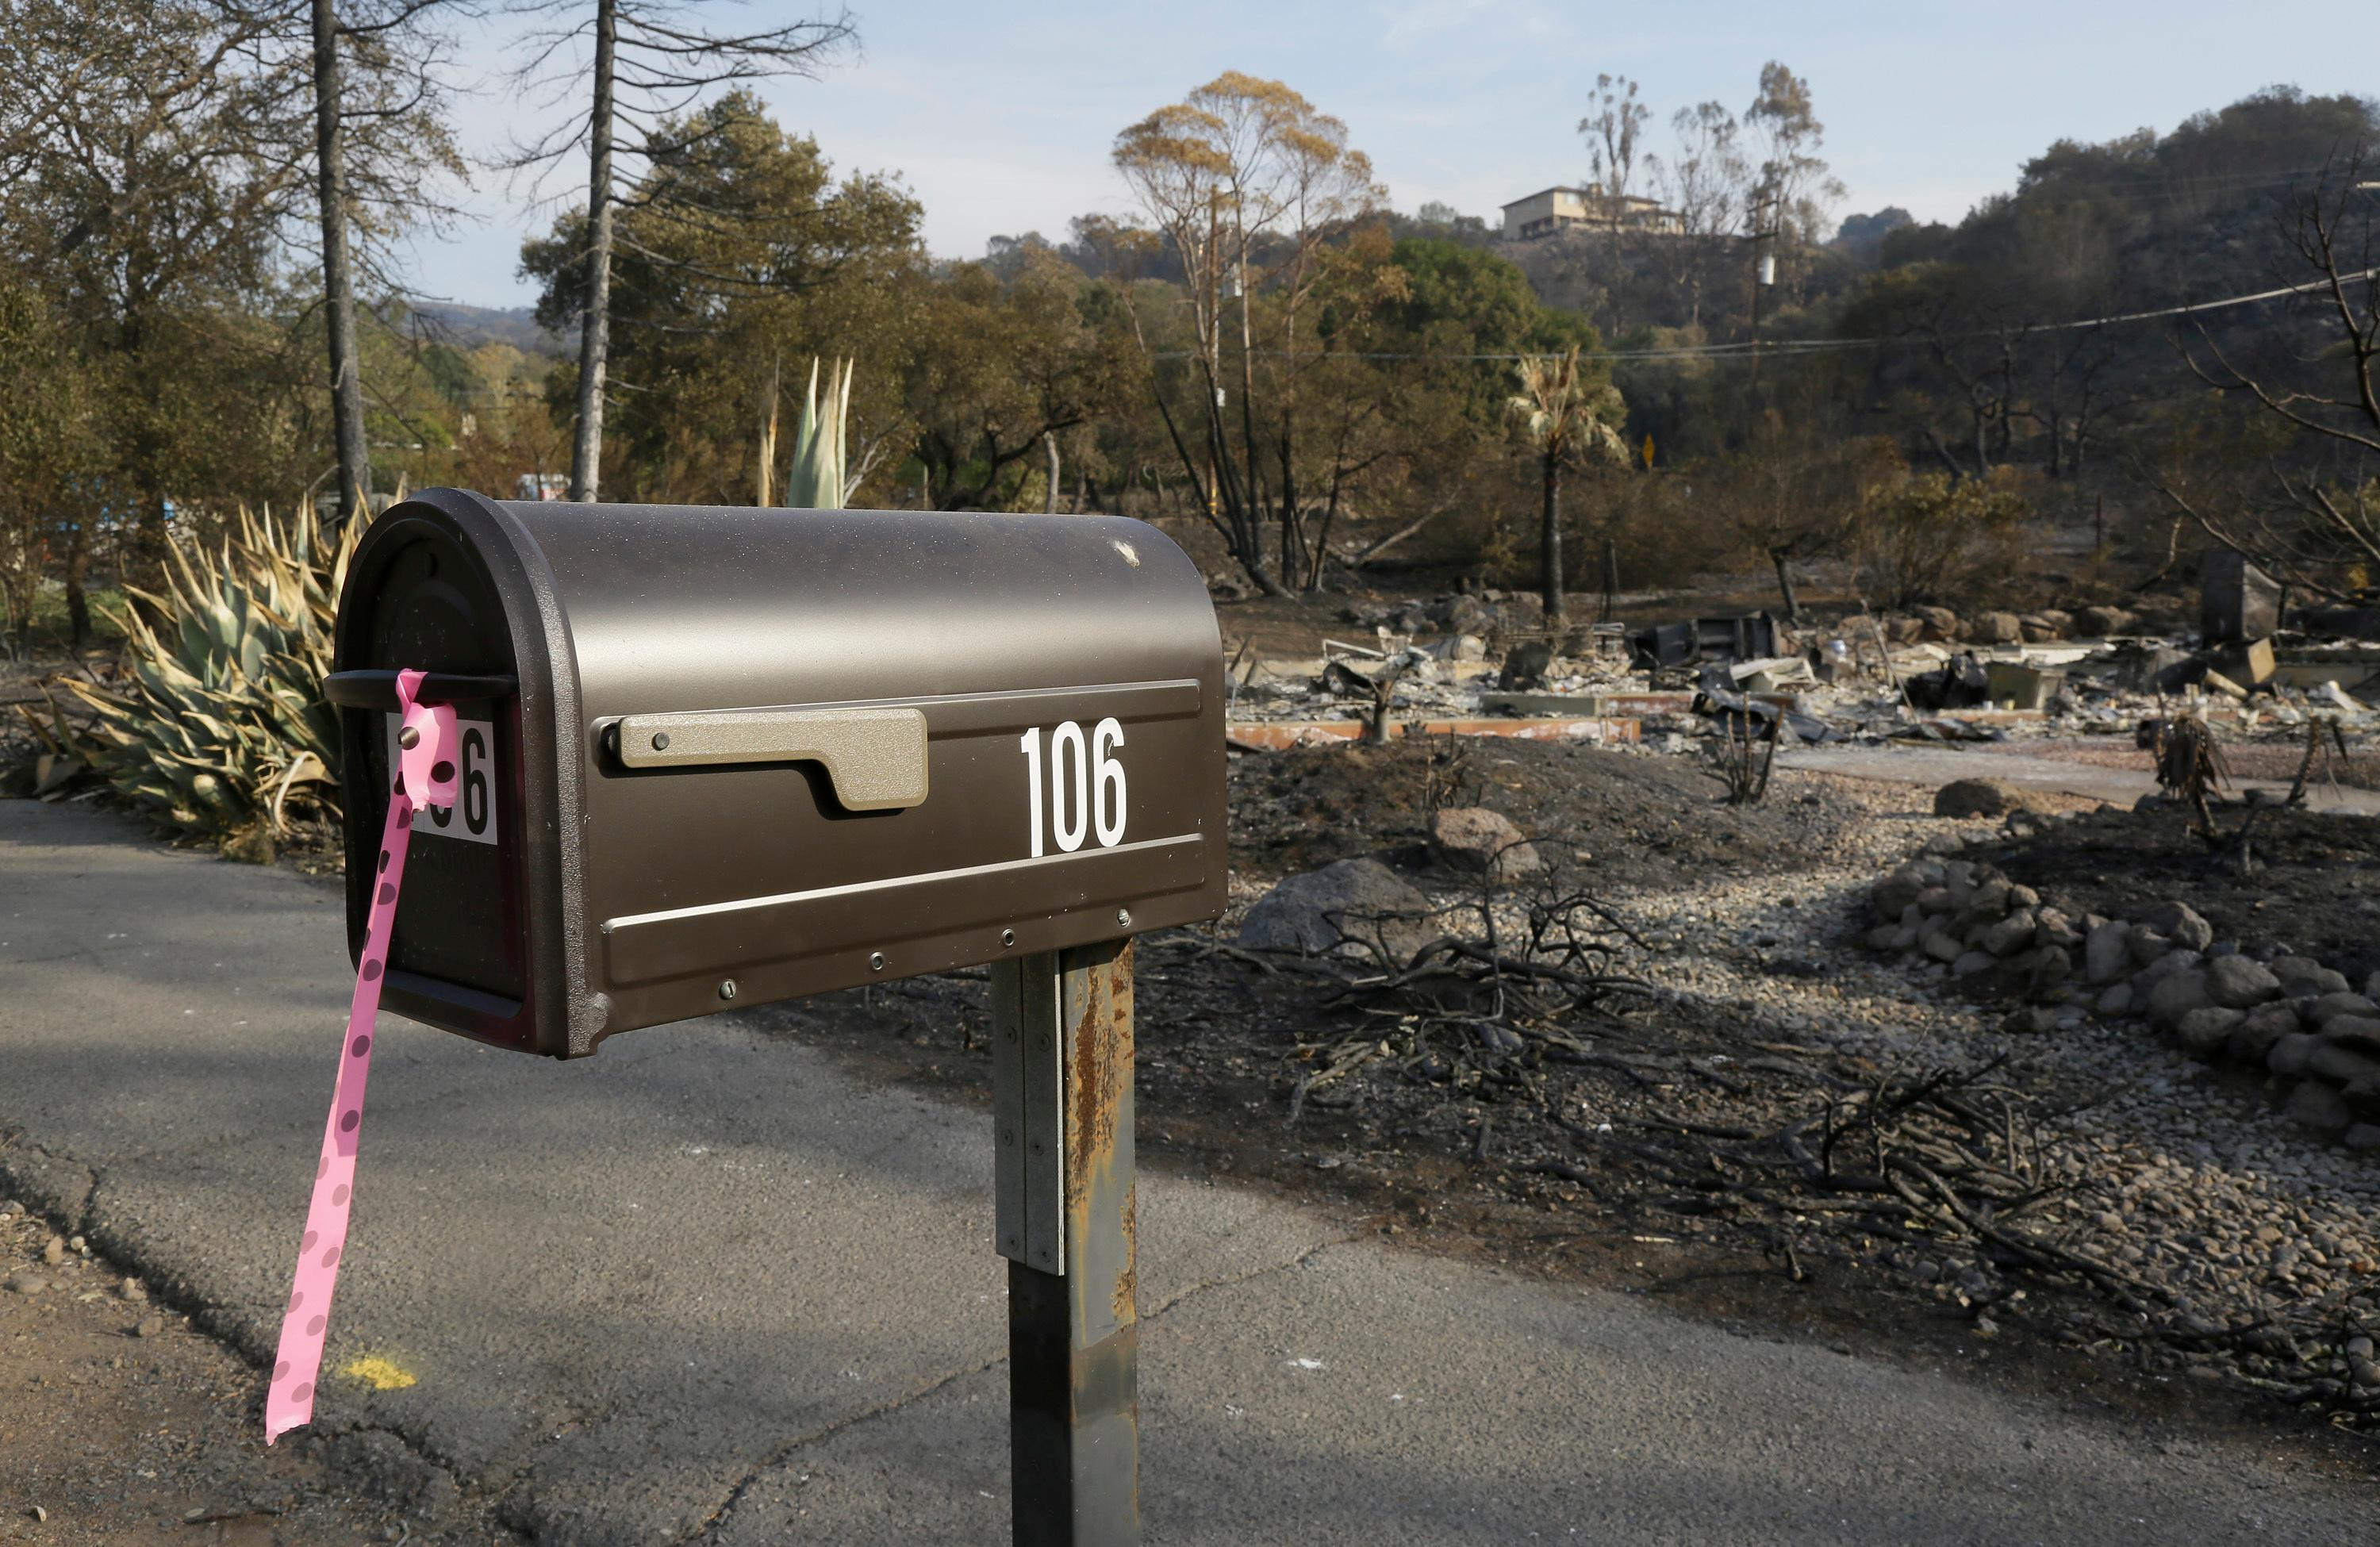 A mailbox stands Monday, Oct. 16, 2017, outside the remains of the home where Sara and Charles Rippey died a week ago in a fast-moving wildfire in Napa, Calif. The couple, 98 and 100 years old, had been married over 75 years. With the winds dying down, fire crews gained ground as they battled wildfires that have devastated California wine country and other parts of the state over the past week, and thousands of people got the all-clear to return home. (AP Photo/Eric Risberg)